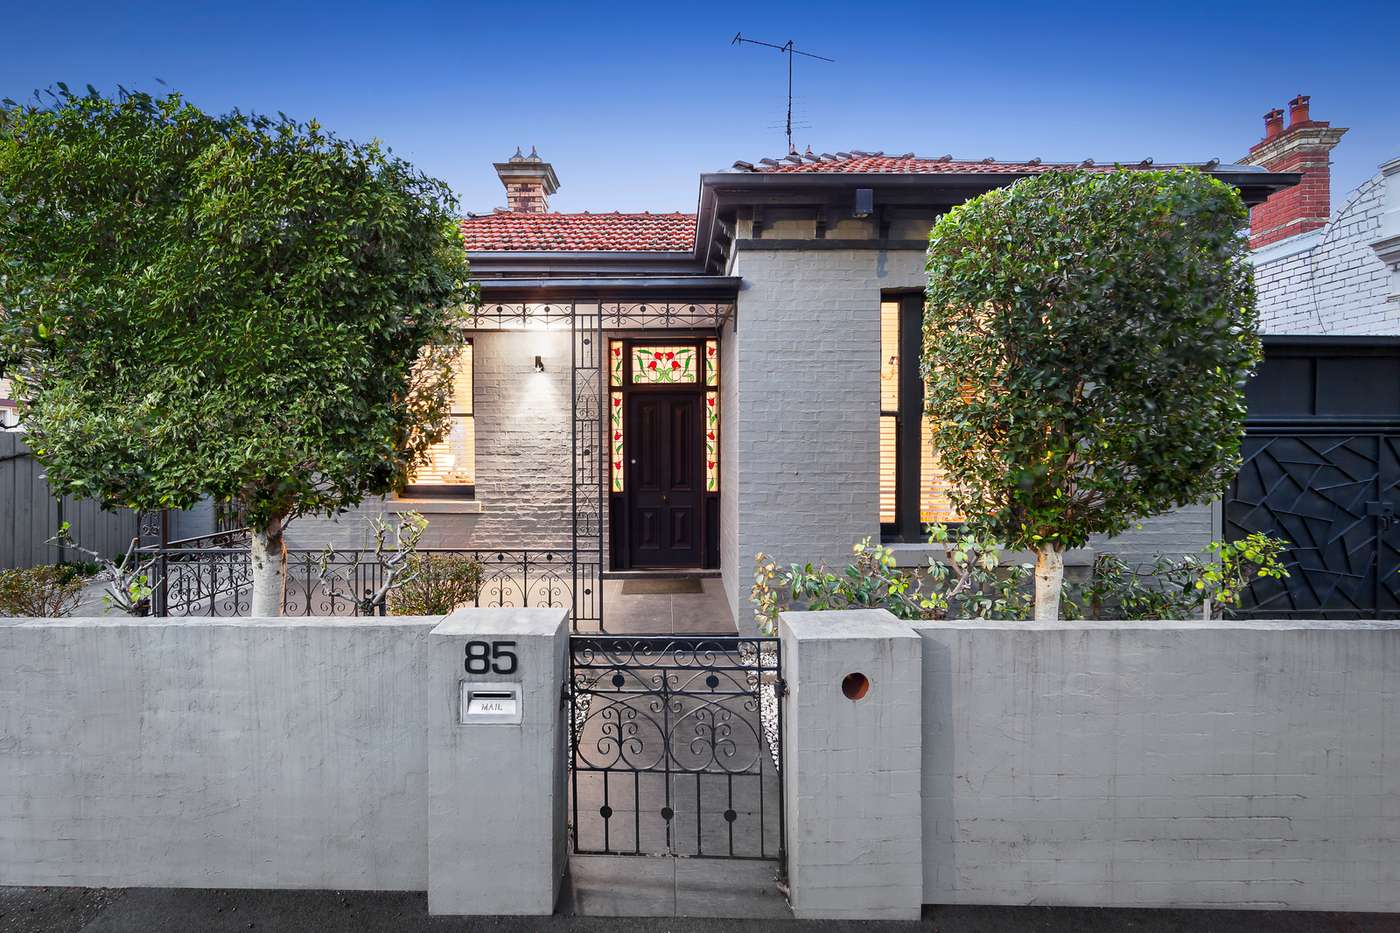 Main view of Homely house listing, 85 Lewisham Road North, Prahran, VIC 3181